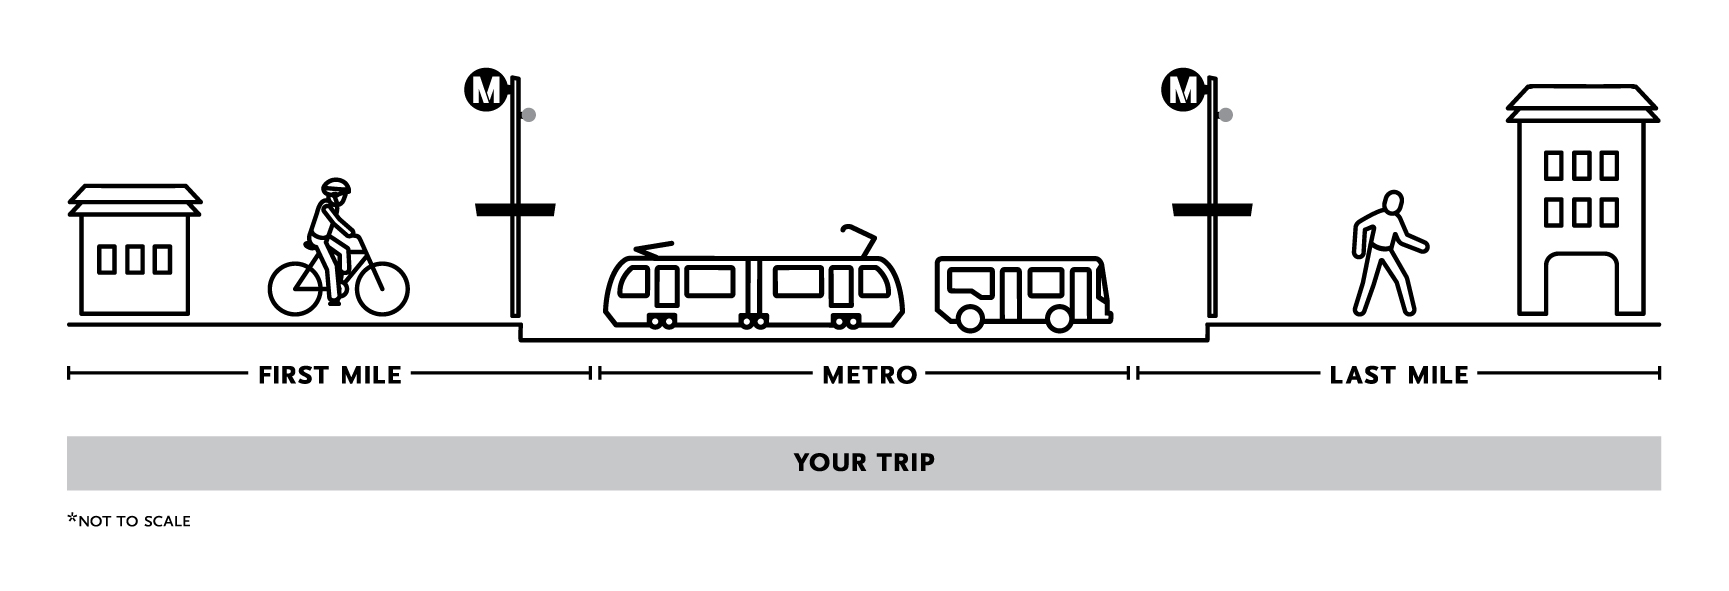 What is First/Last Mile Diagram? Illustrations of home, bike rider, Metro stop, vehicles demonstrating concept.